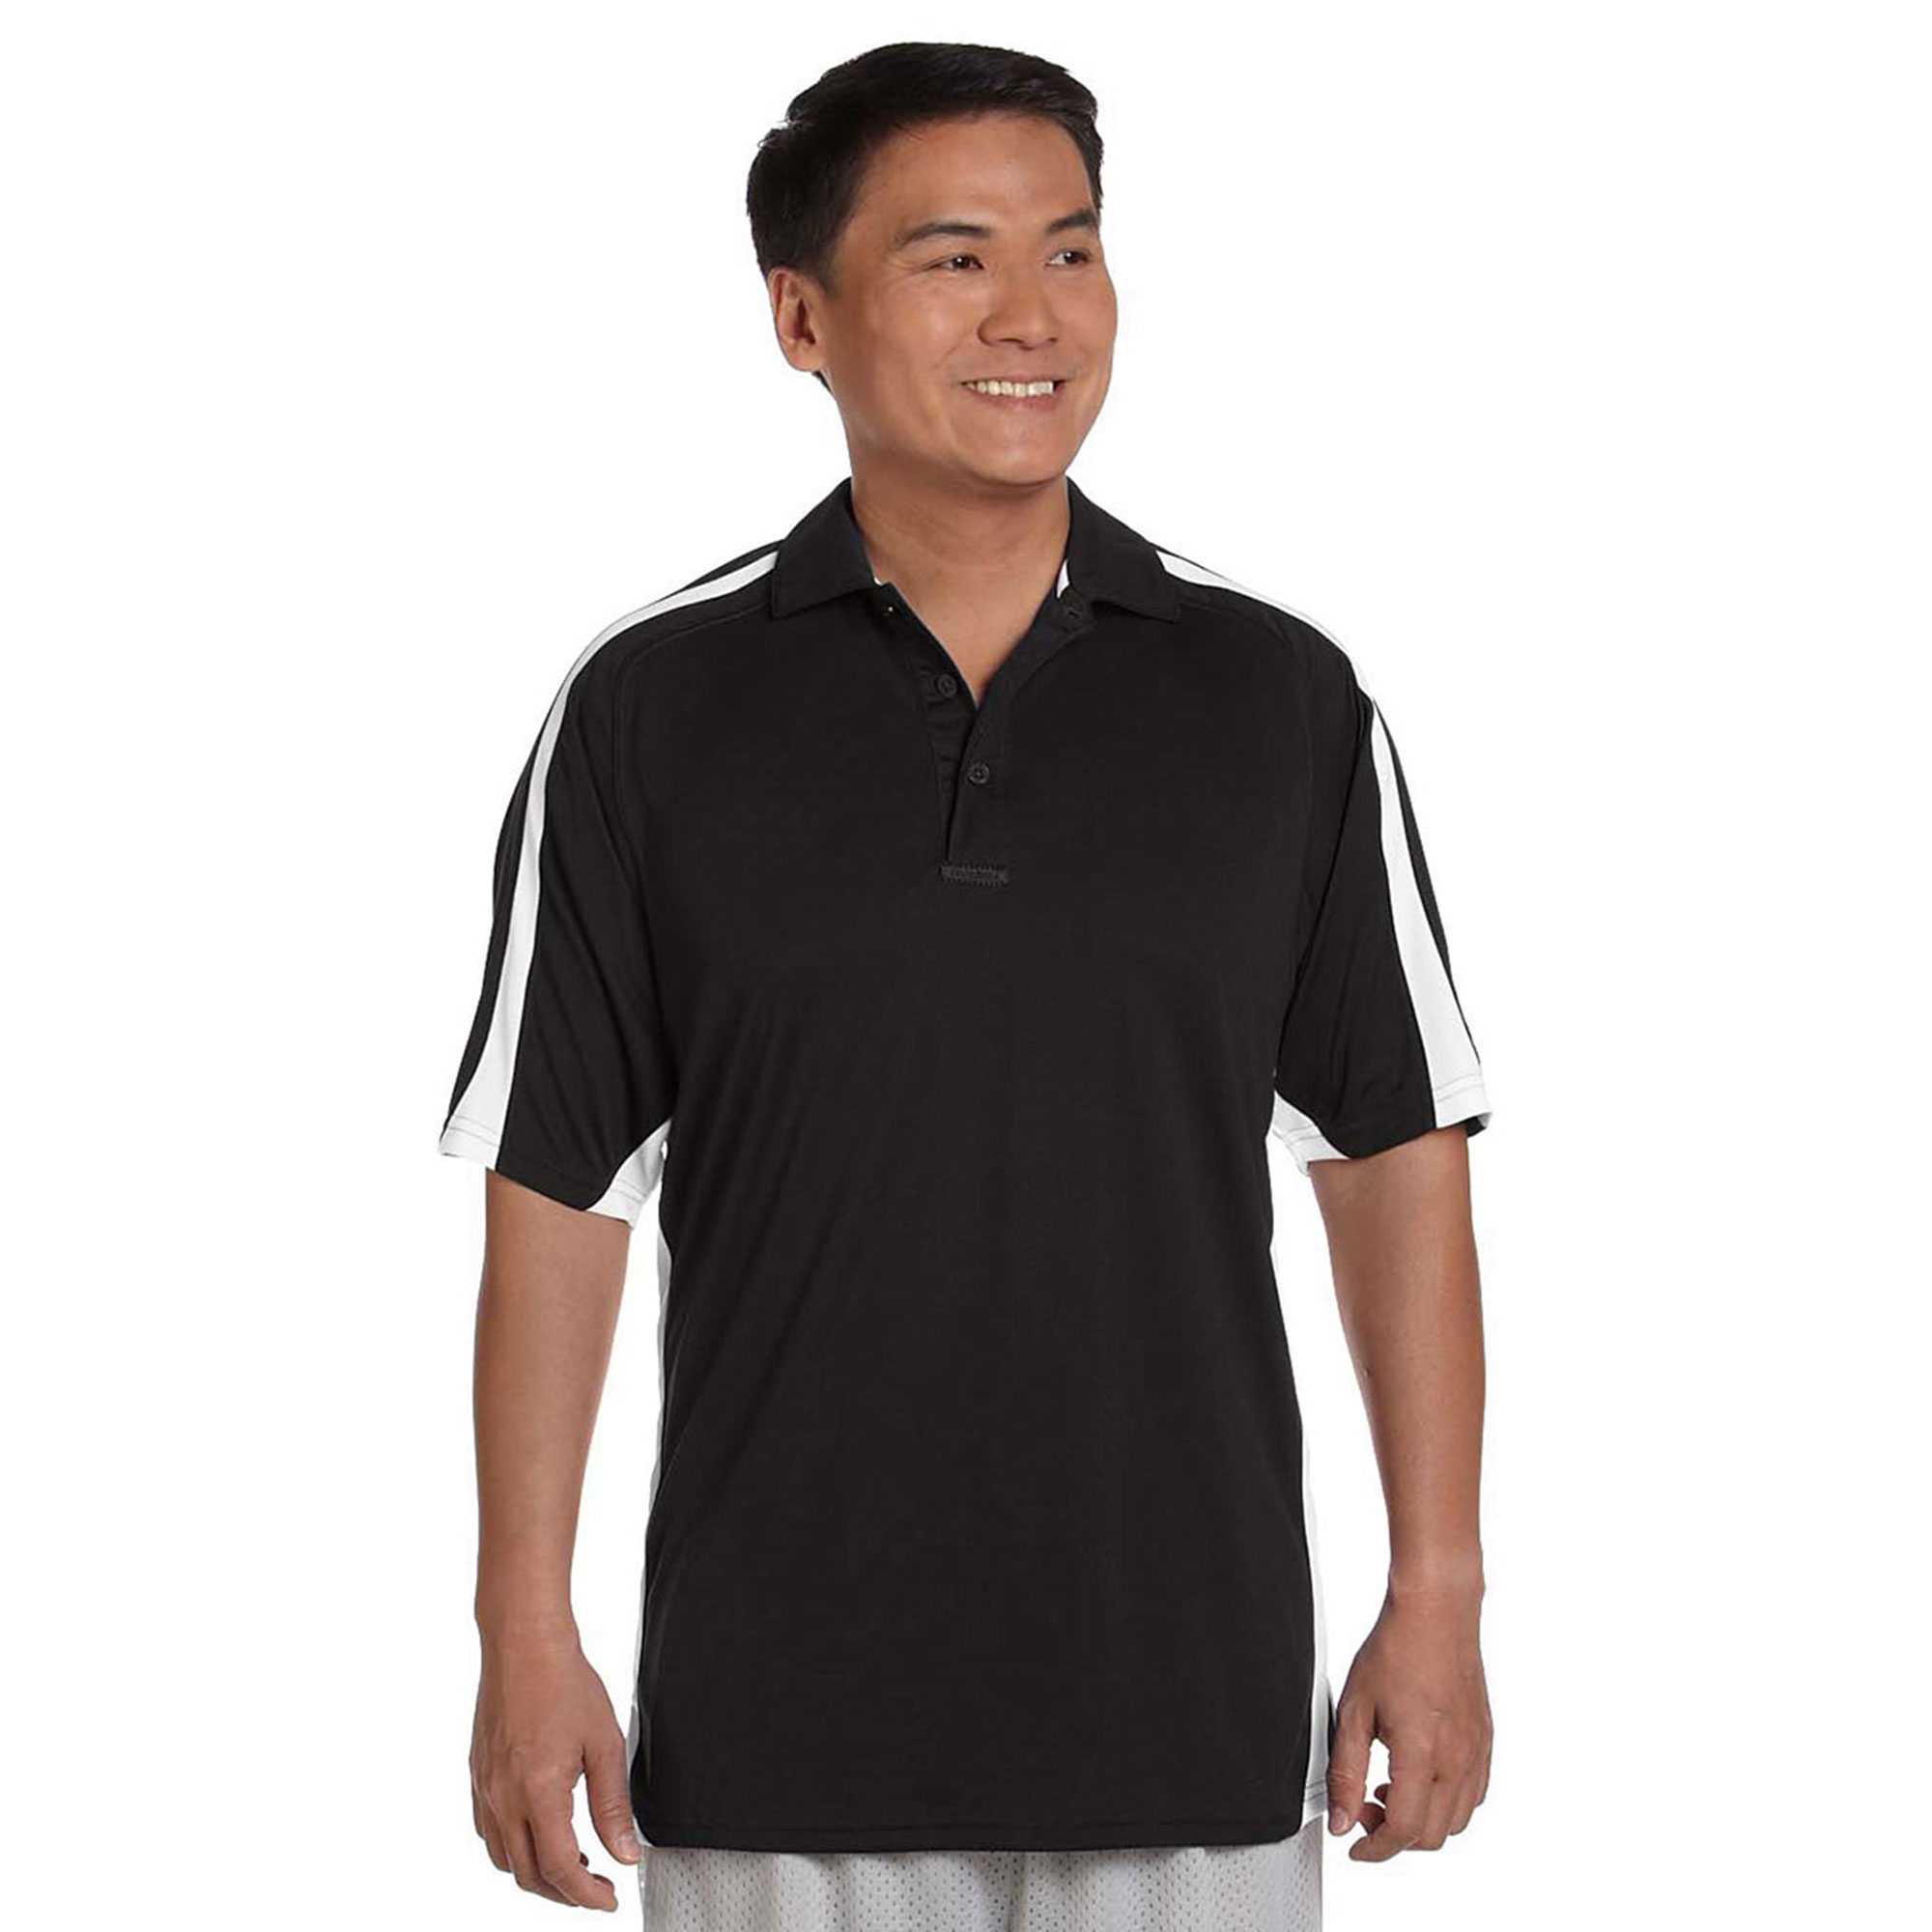 Russell Athletic Mens Team Game Day Polo T Shirt, Black/W...